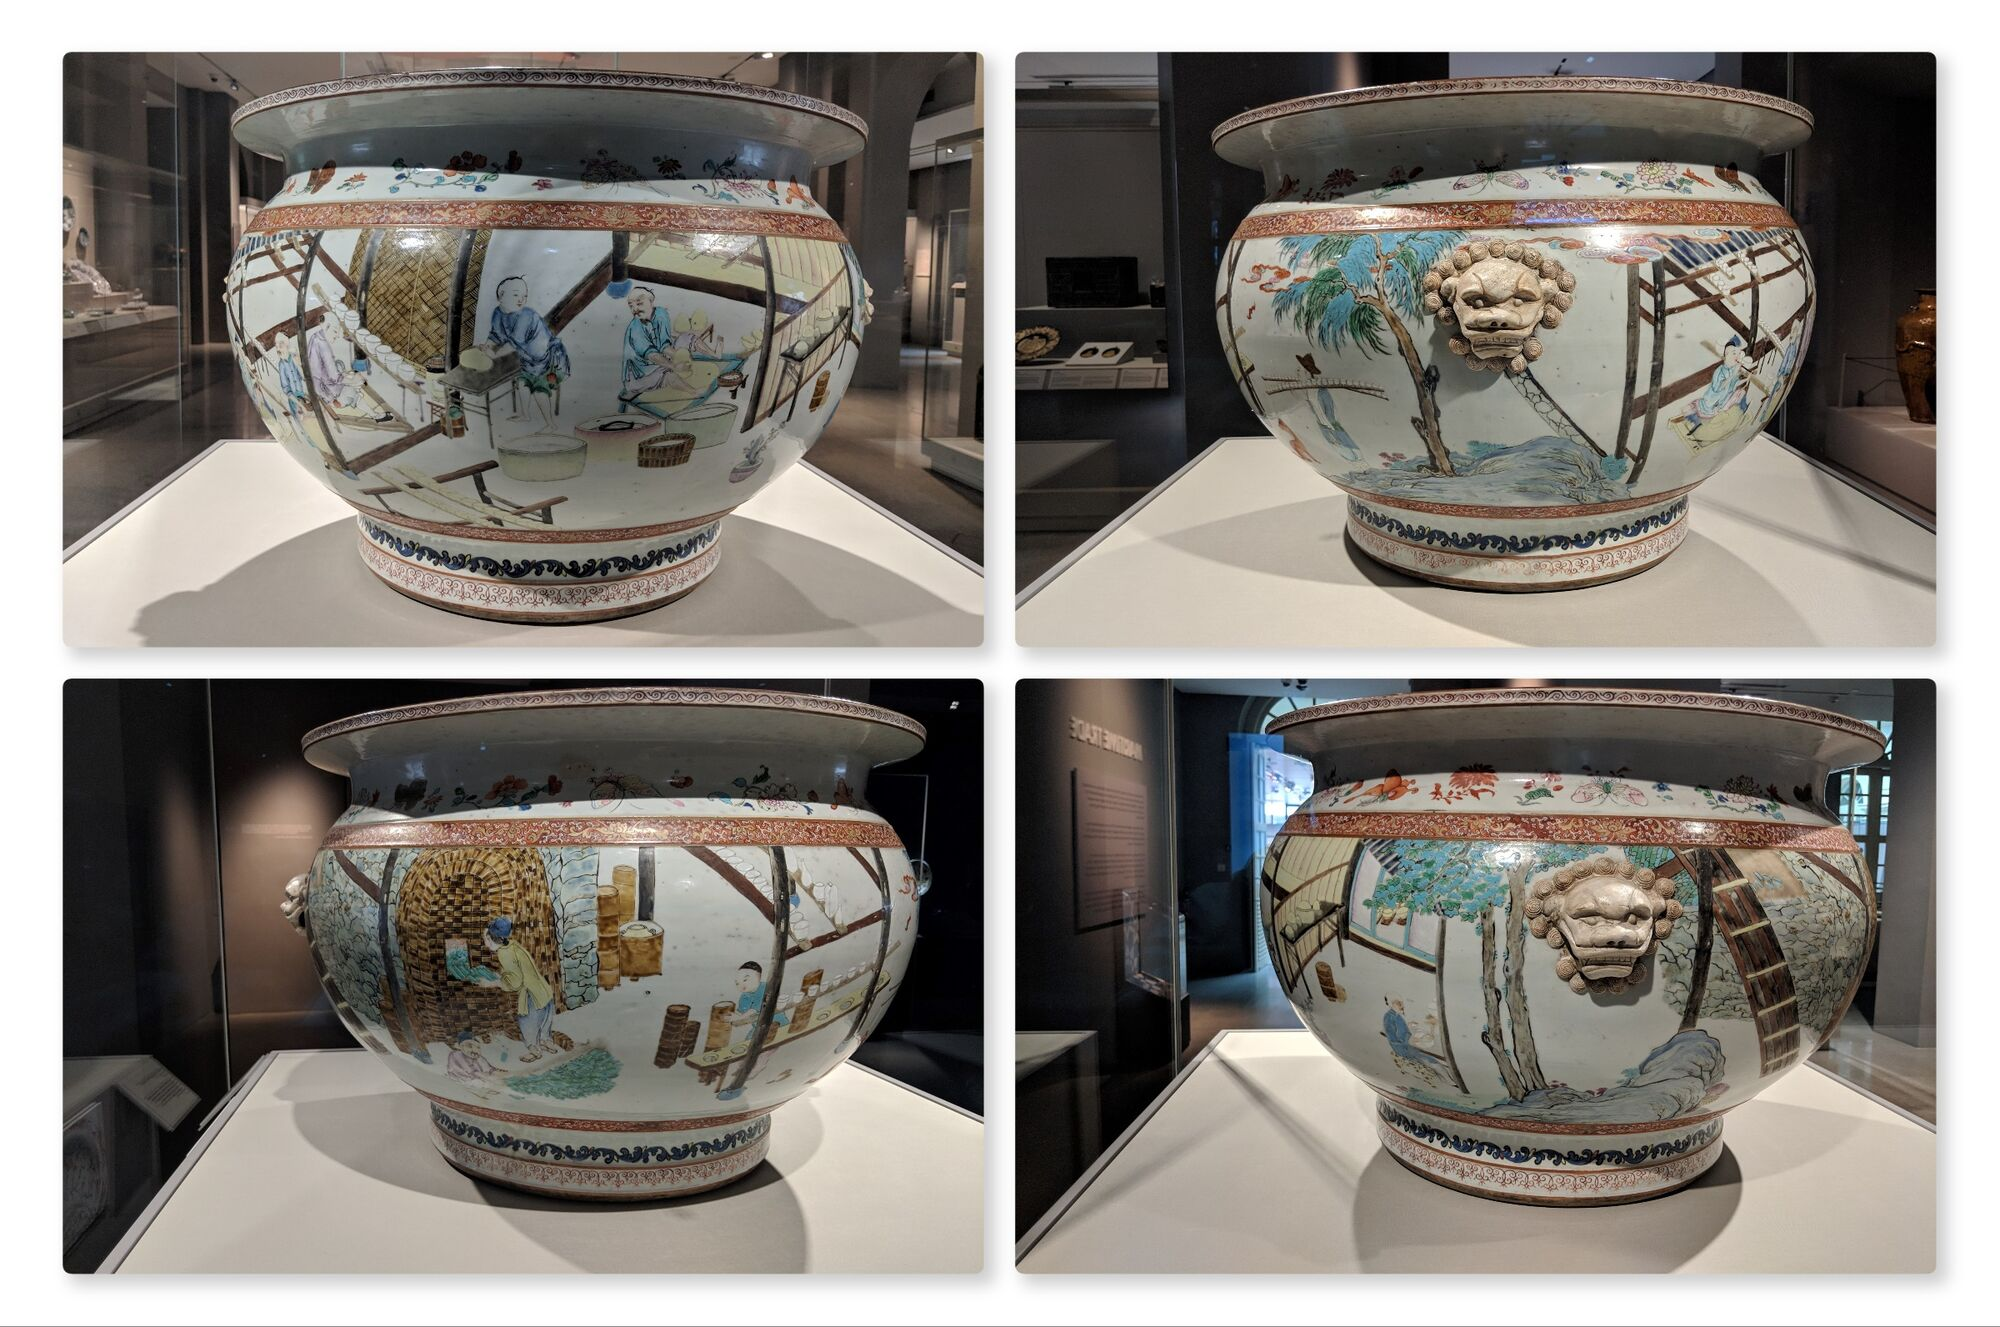 Fish tank depicting the making of porcelain, China, around 1735. Th stages of porcelain production - preparing clay, shaping and glazing bowls, firing in the kiln are shown around the sides of this large porcelain bowl.